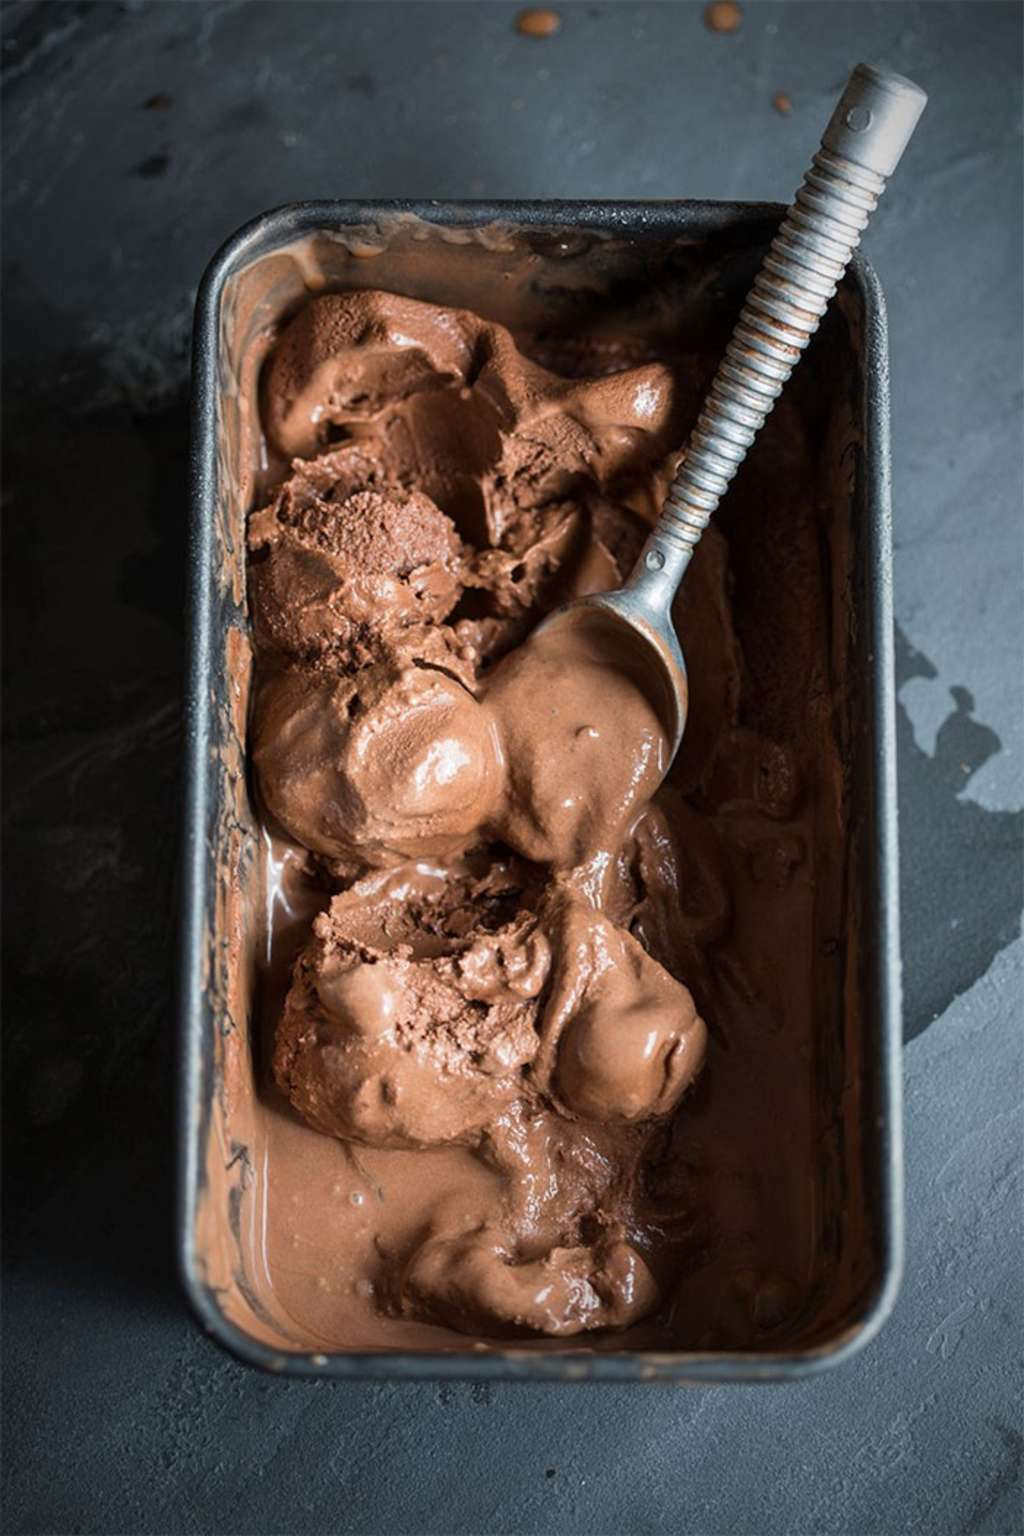 You Only Need 3 Ingredients for This No-Churn Chocolate Ice Cream